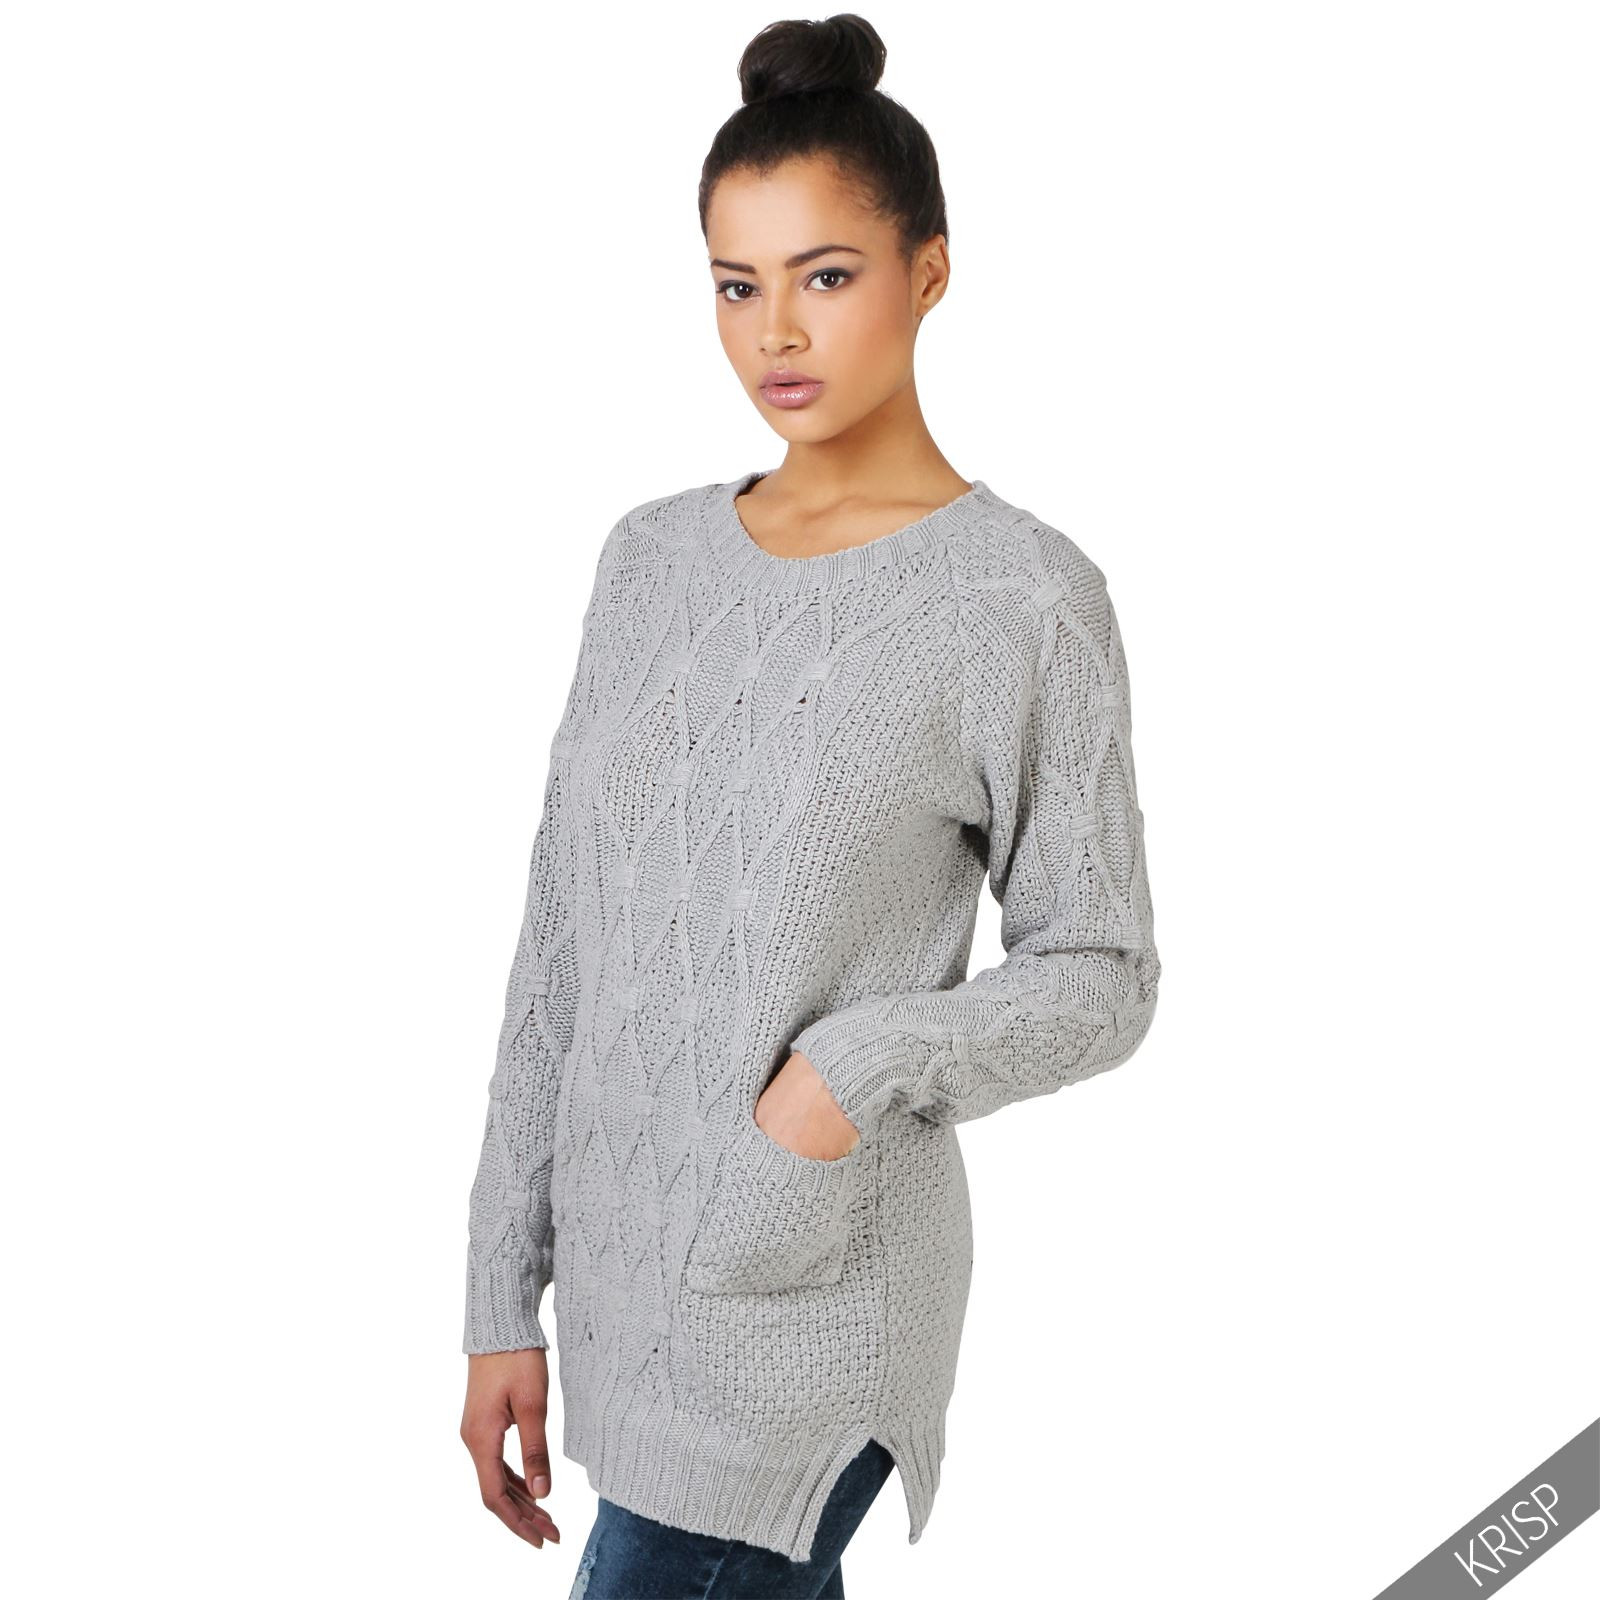 Lovely Womens Chunky Cable Knit Baggy Long Winter Jumper La S Ladies Cable Knit Sweater Of Charming 49 Photos Ladies Cable Knit Sweater